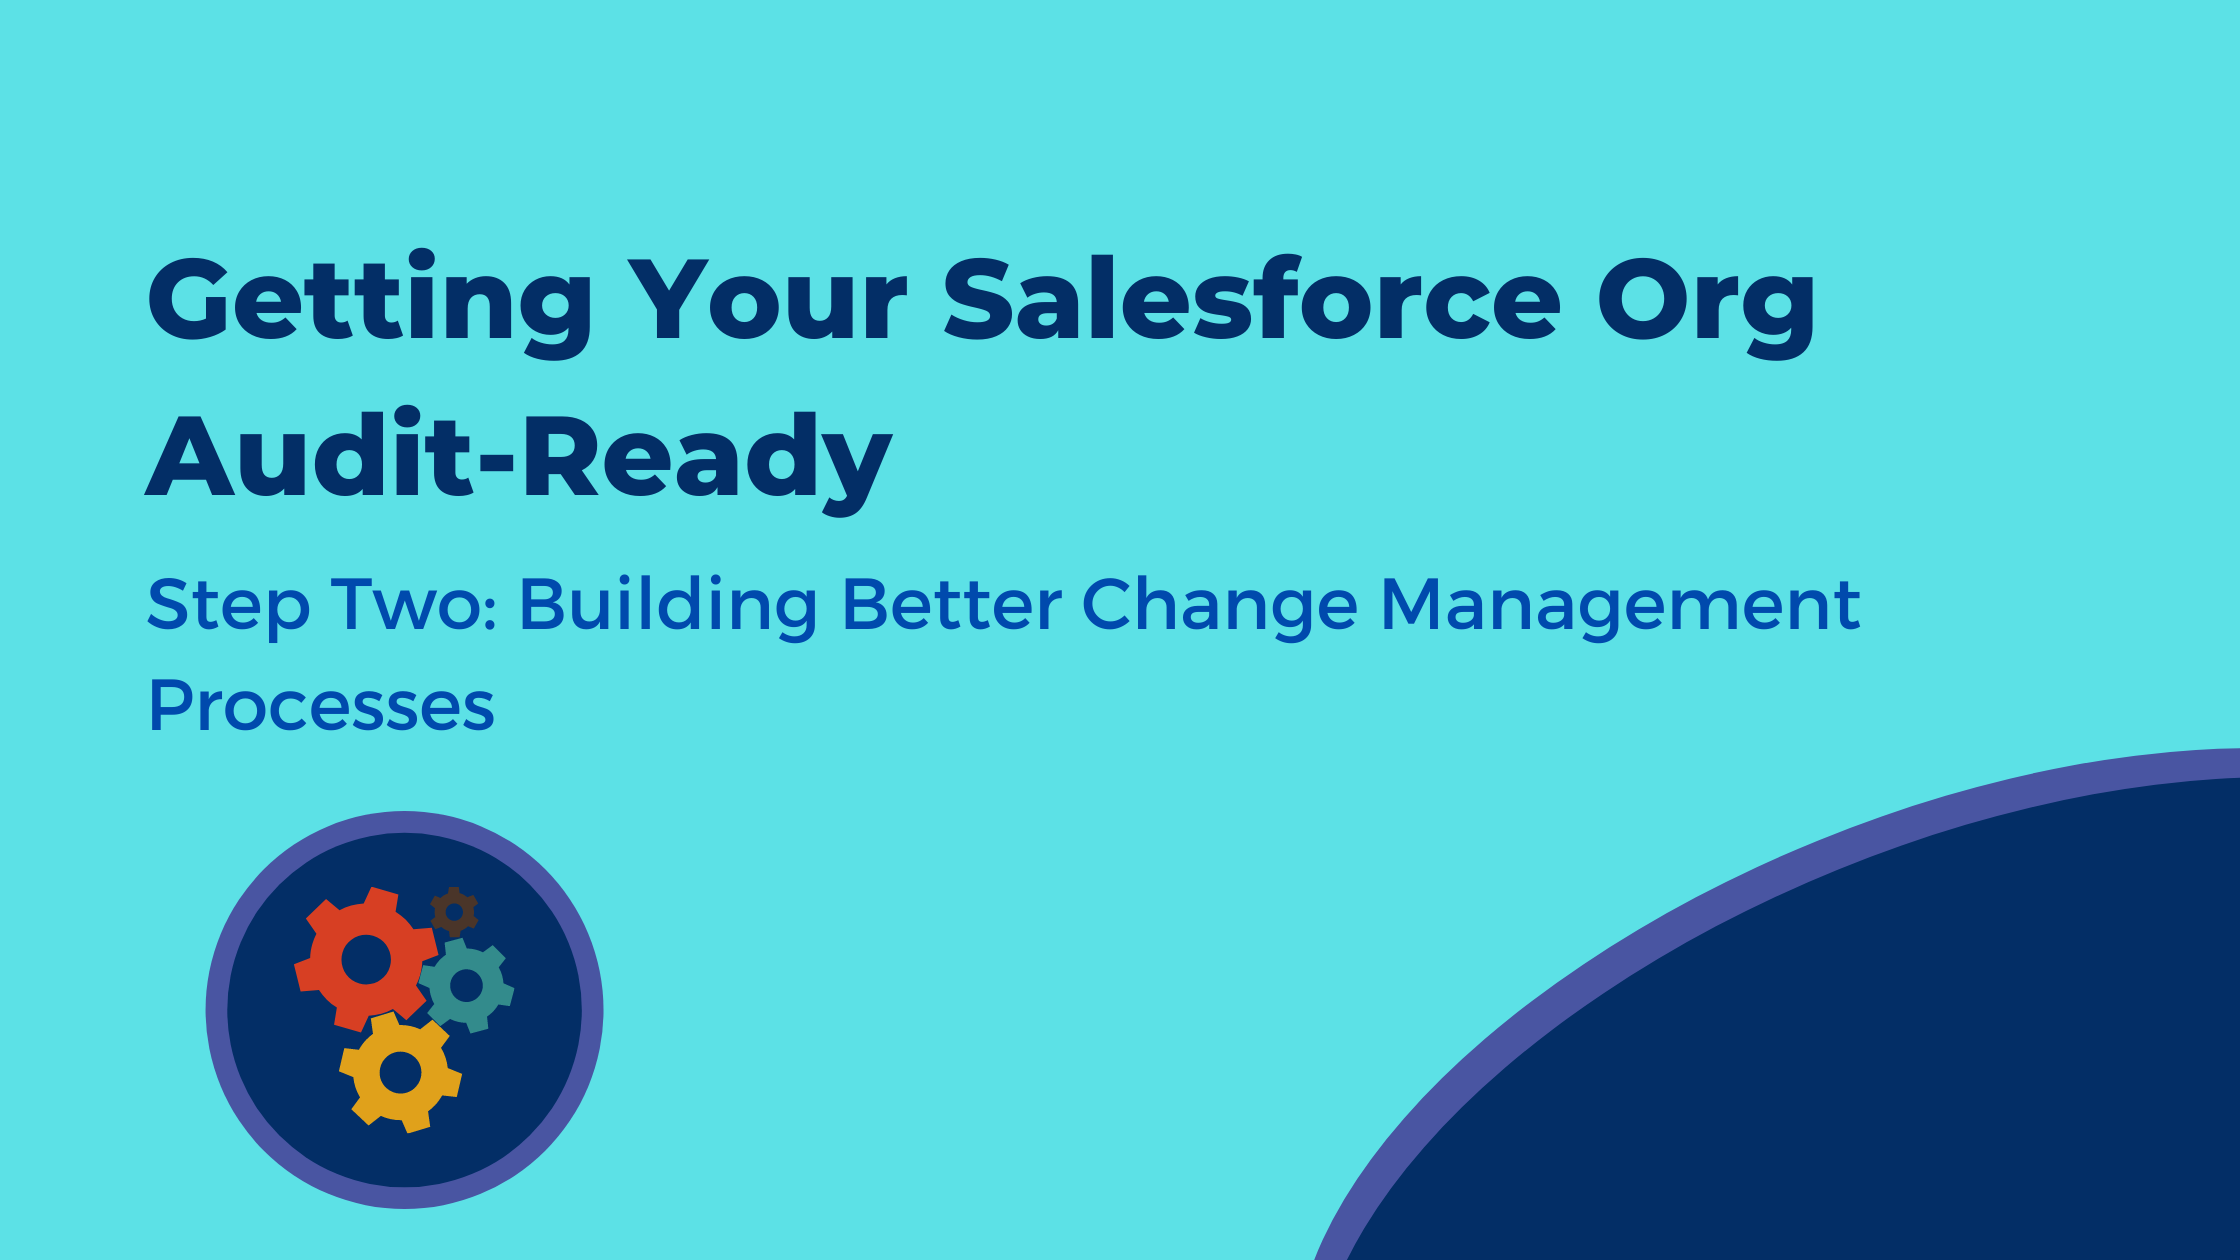 Getting Your Salesforce Org Audit-Ready (2)